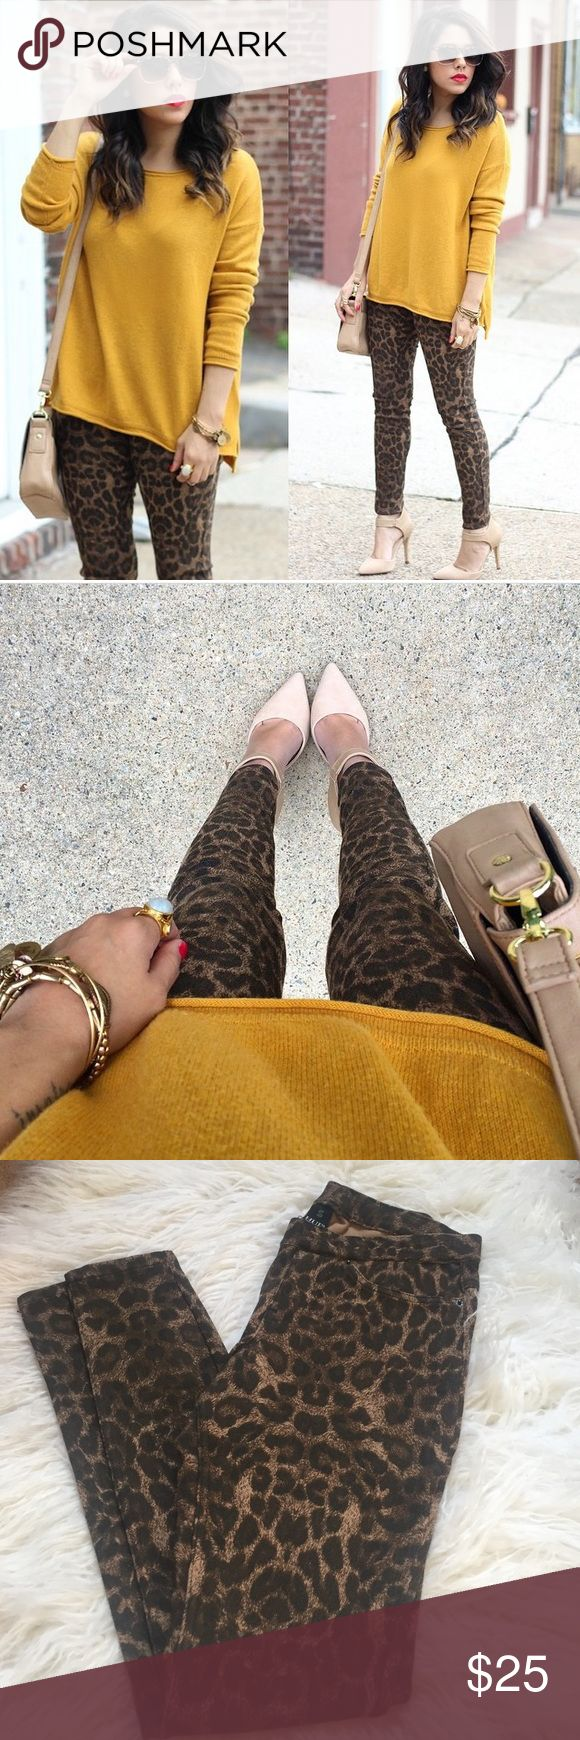 Leopard Print Leggings Worn once. Fun leopard print leggings. Stretchy. Faux front pockets. Back pockets. HUE Pants Leggings